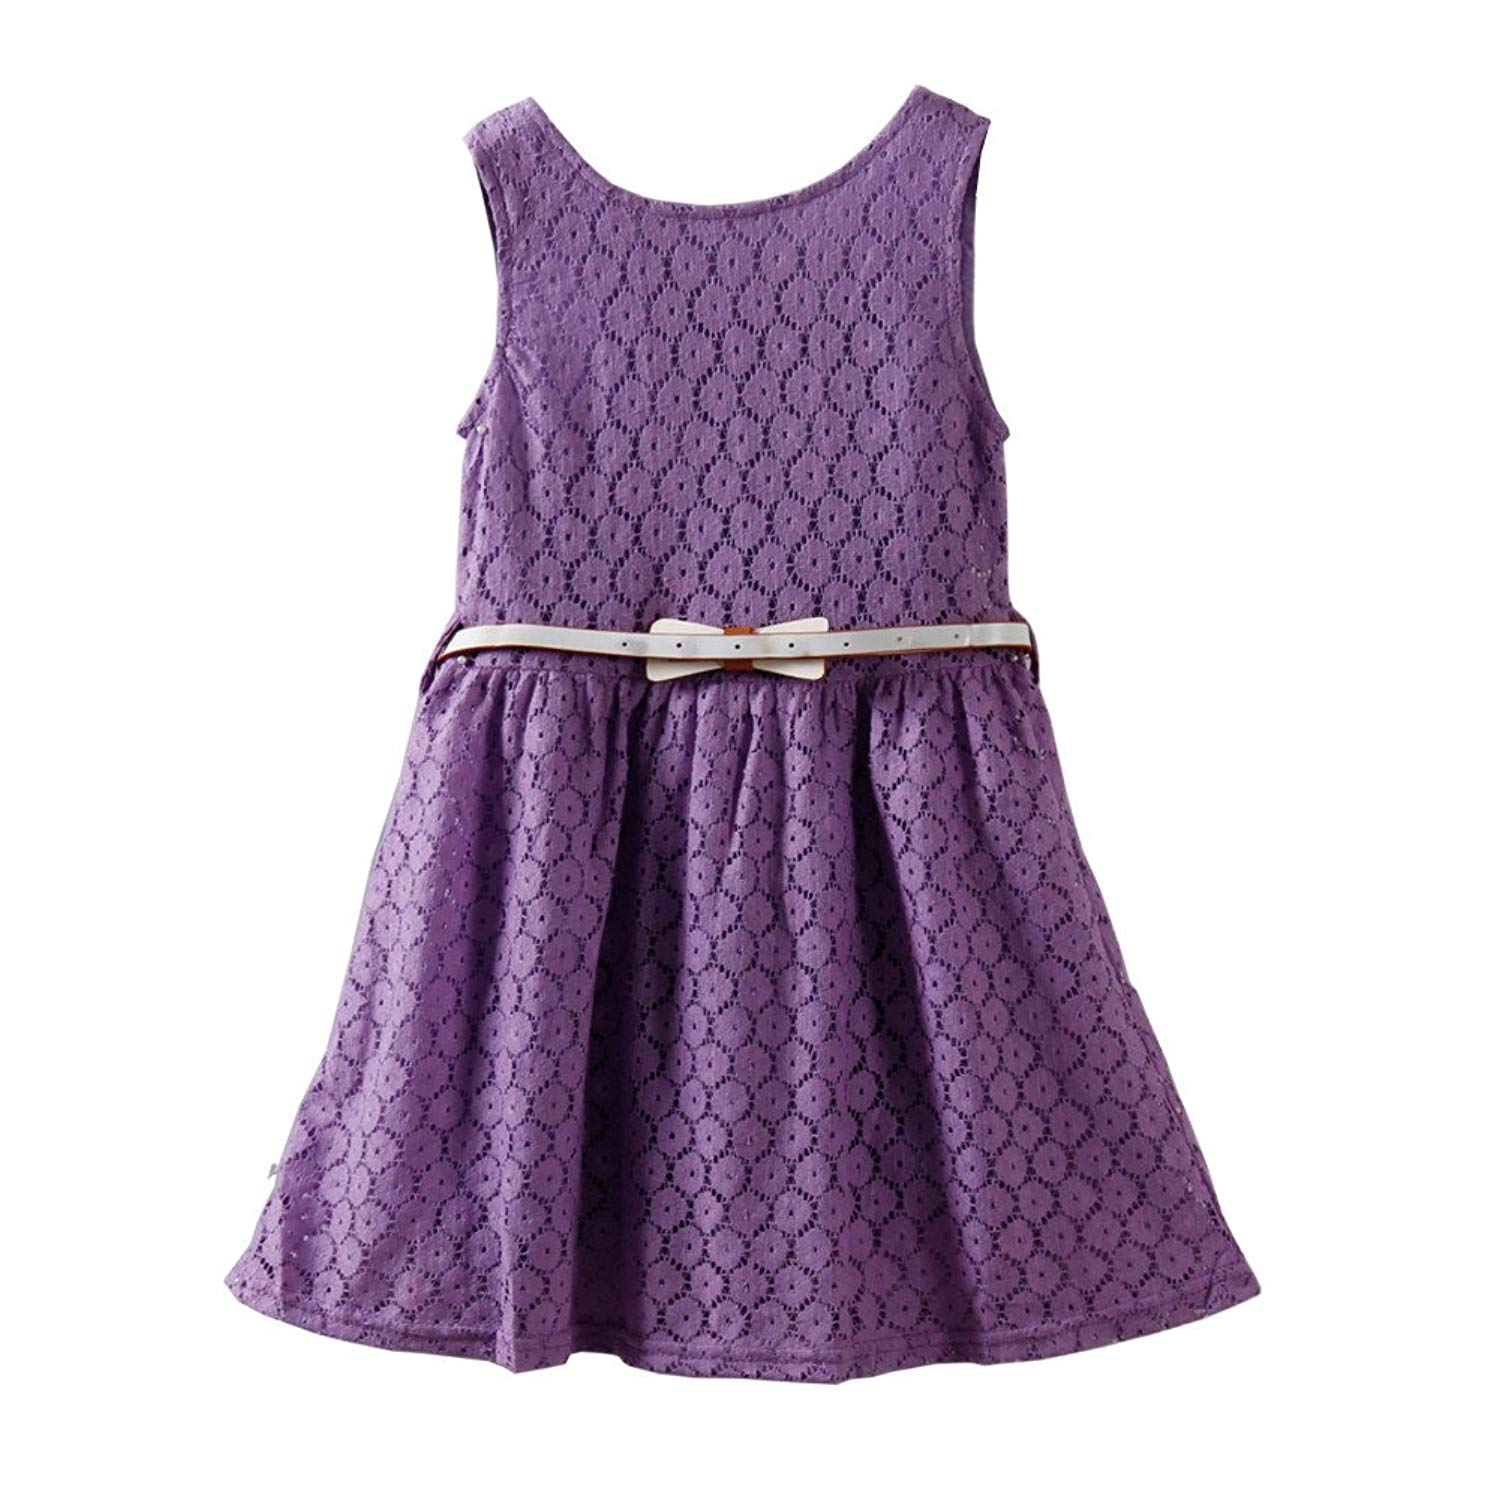 91994ffc53ee Get Quotations · Mud Kingdom Girls' Solid Color Lace Dress with Belt  Sundress